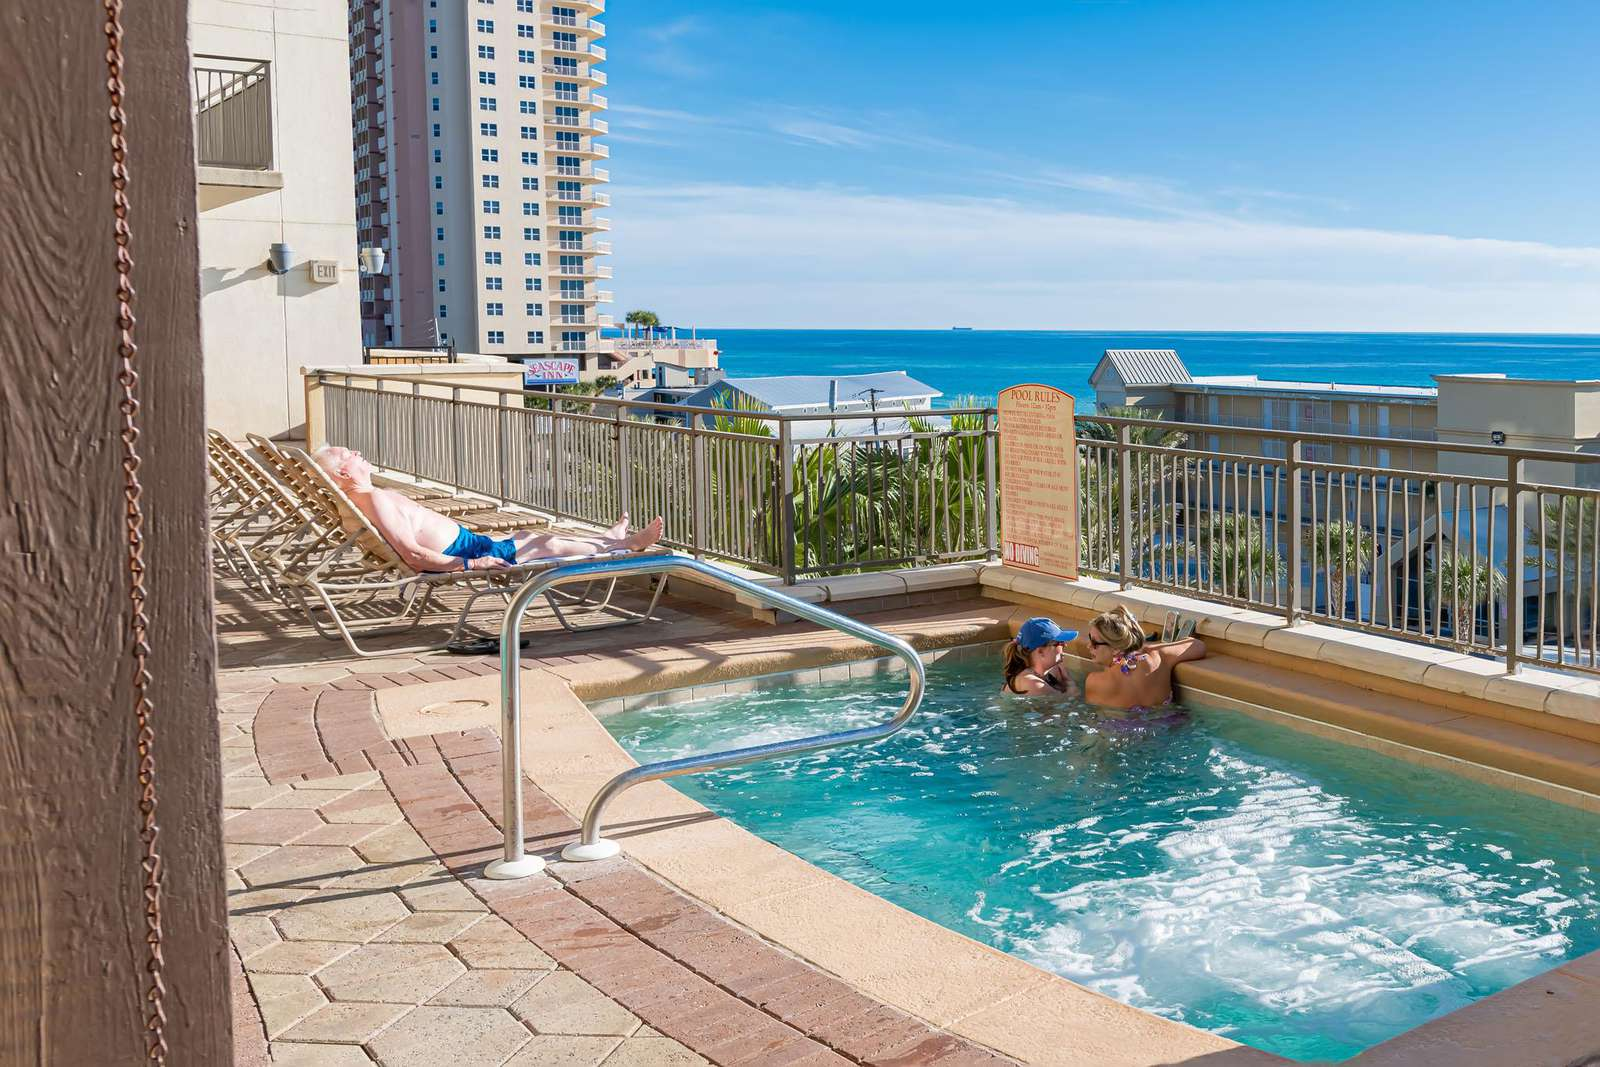 Nice size hot tub overlooking the Gulf!